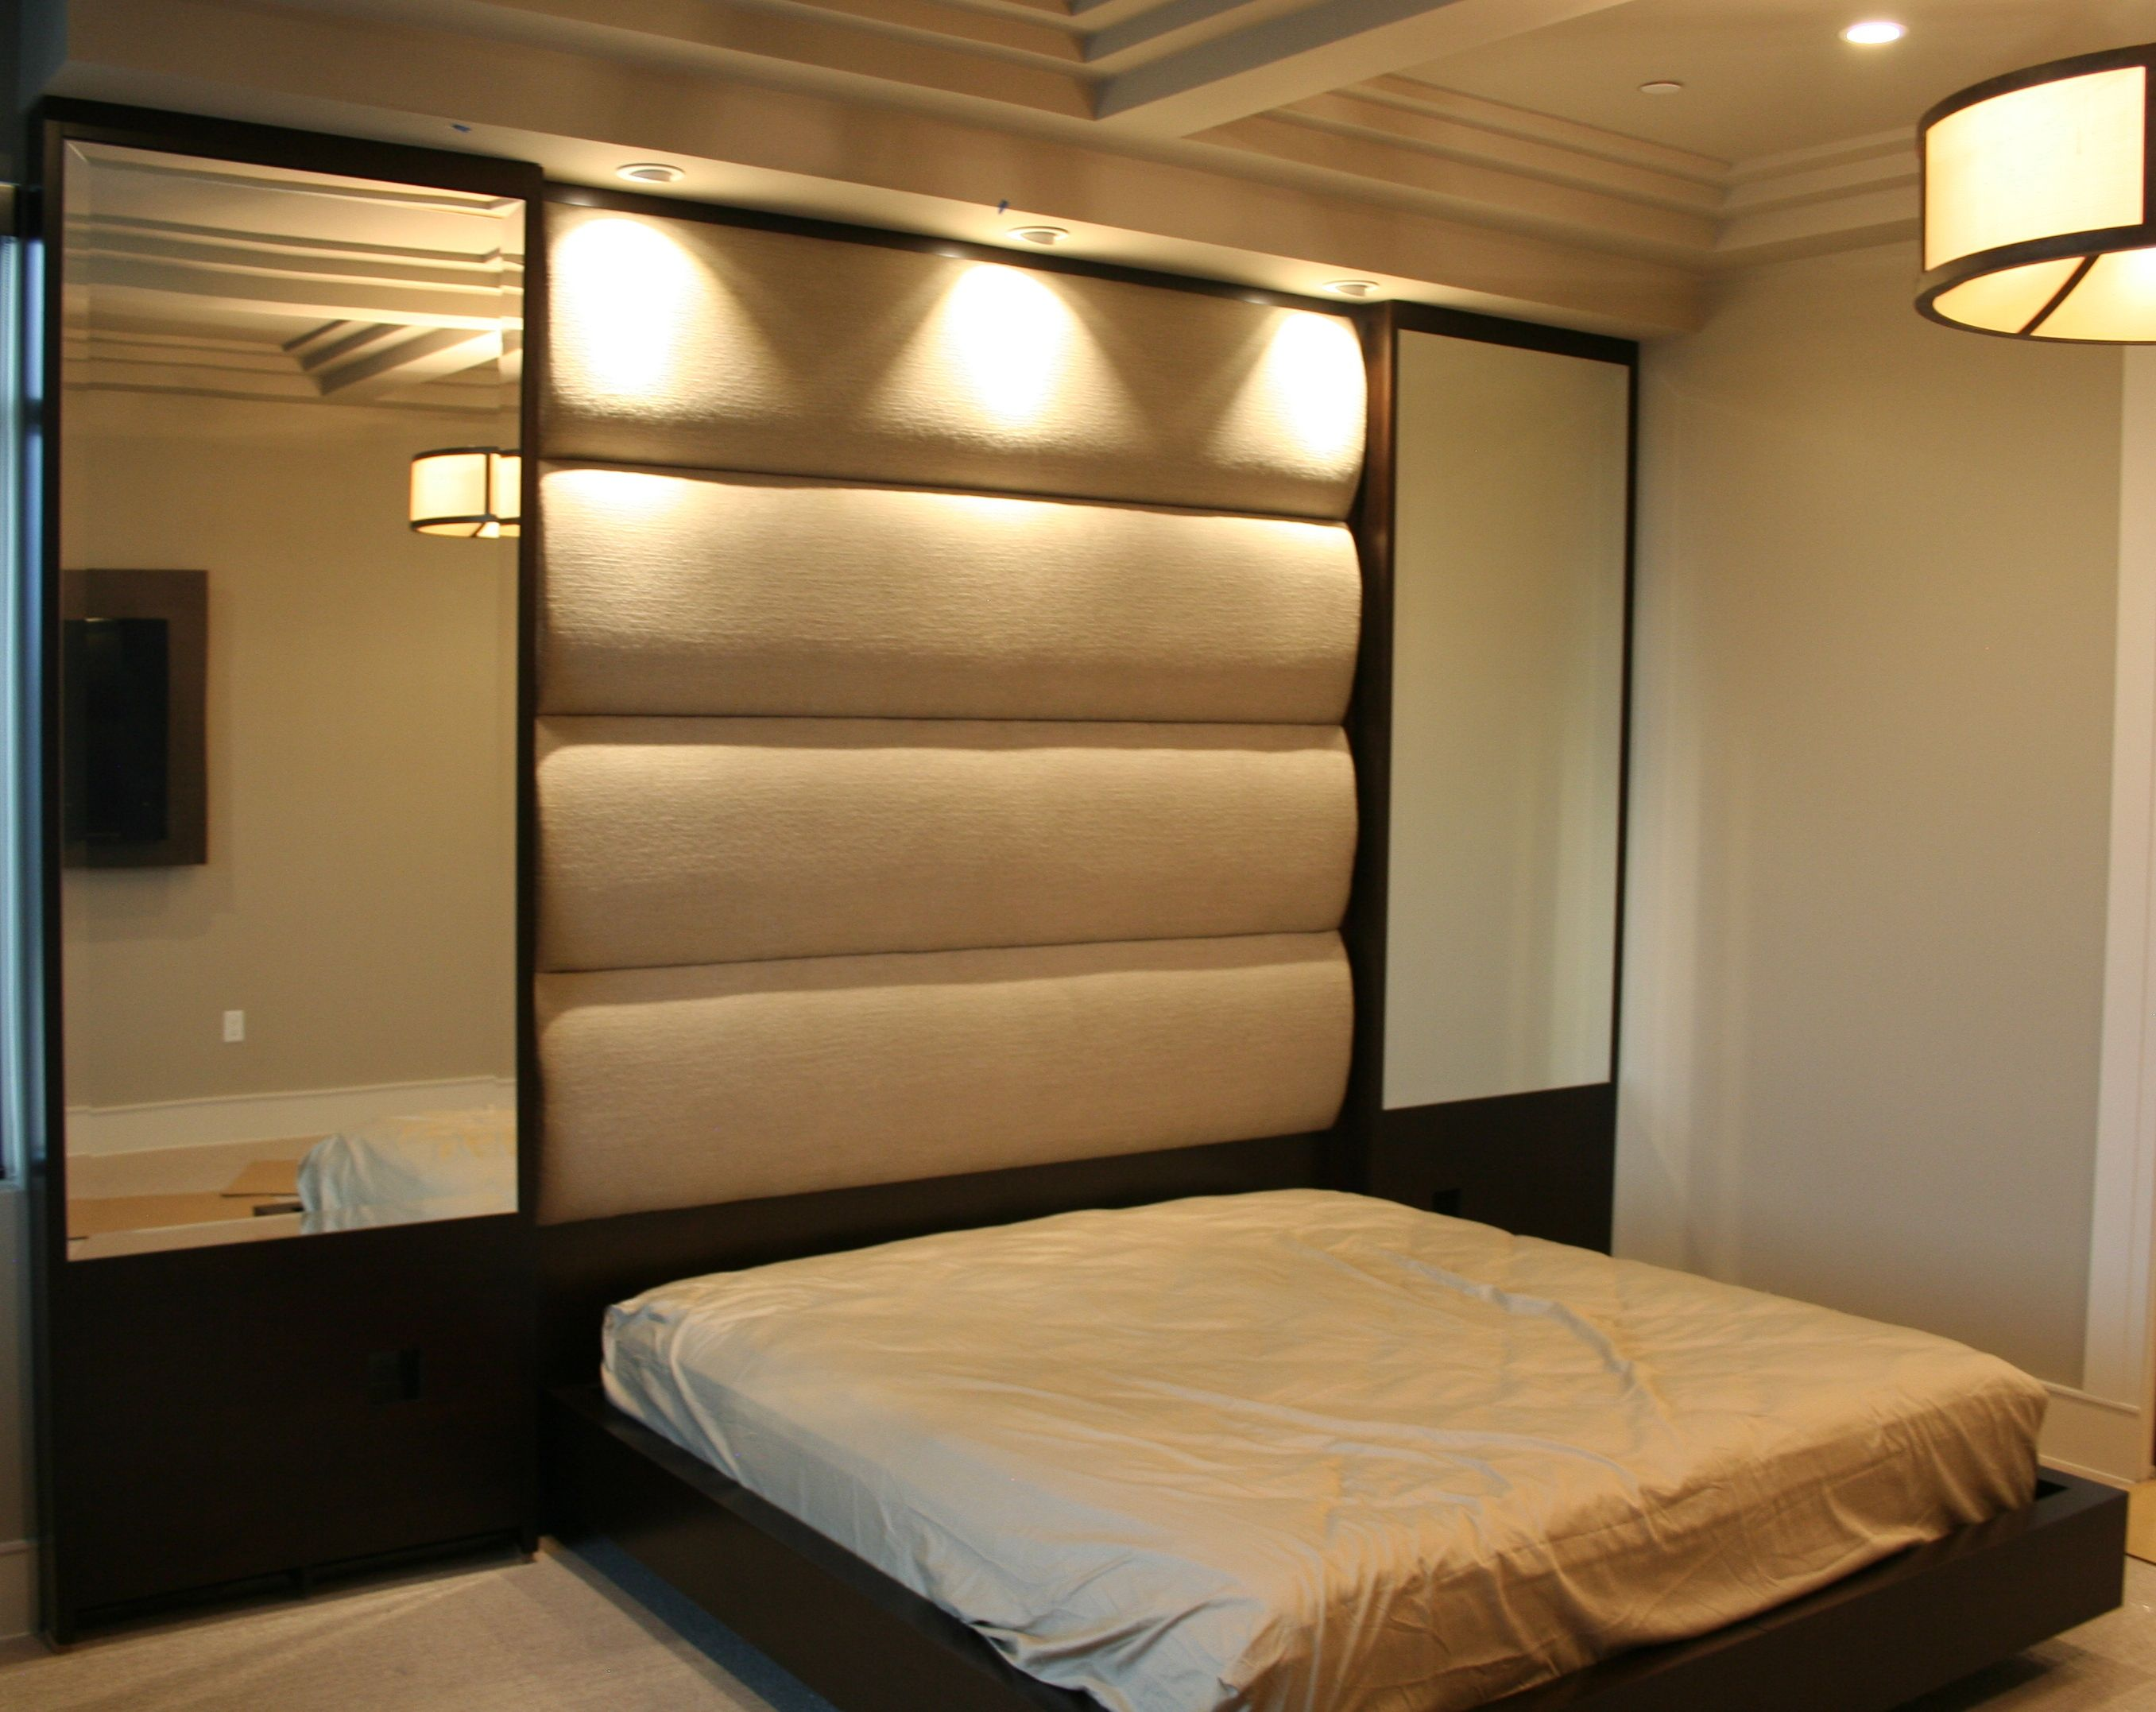 Built As Components And Installed Onsite This Bed Features Beveled Mirror Wall Panels Upholstered Headboard A Modern Style Base